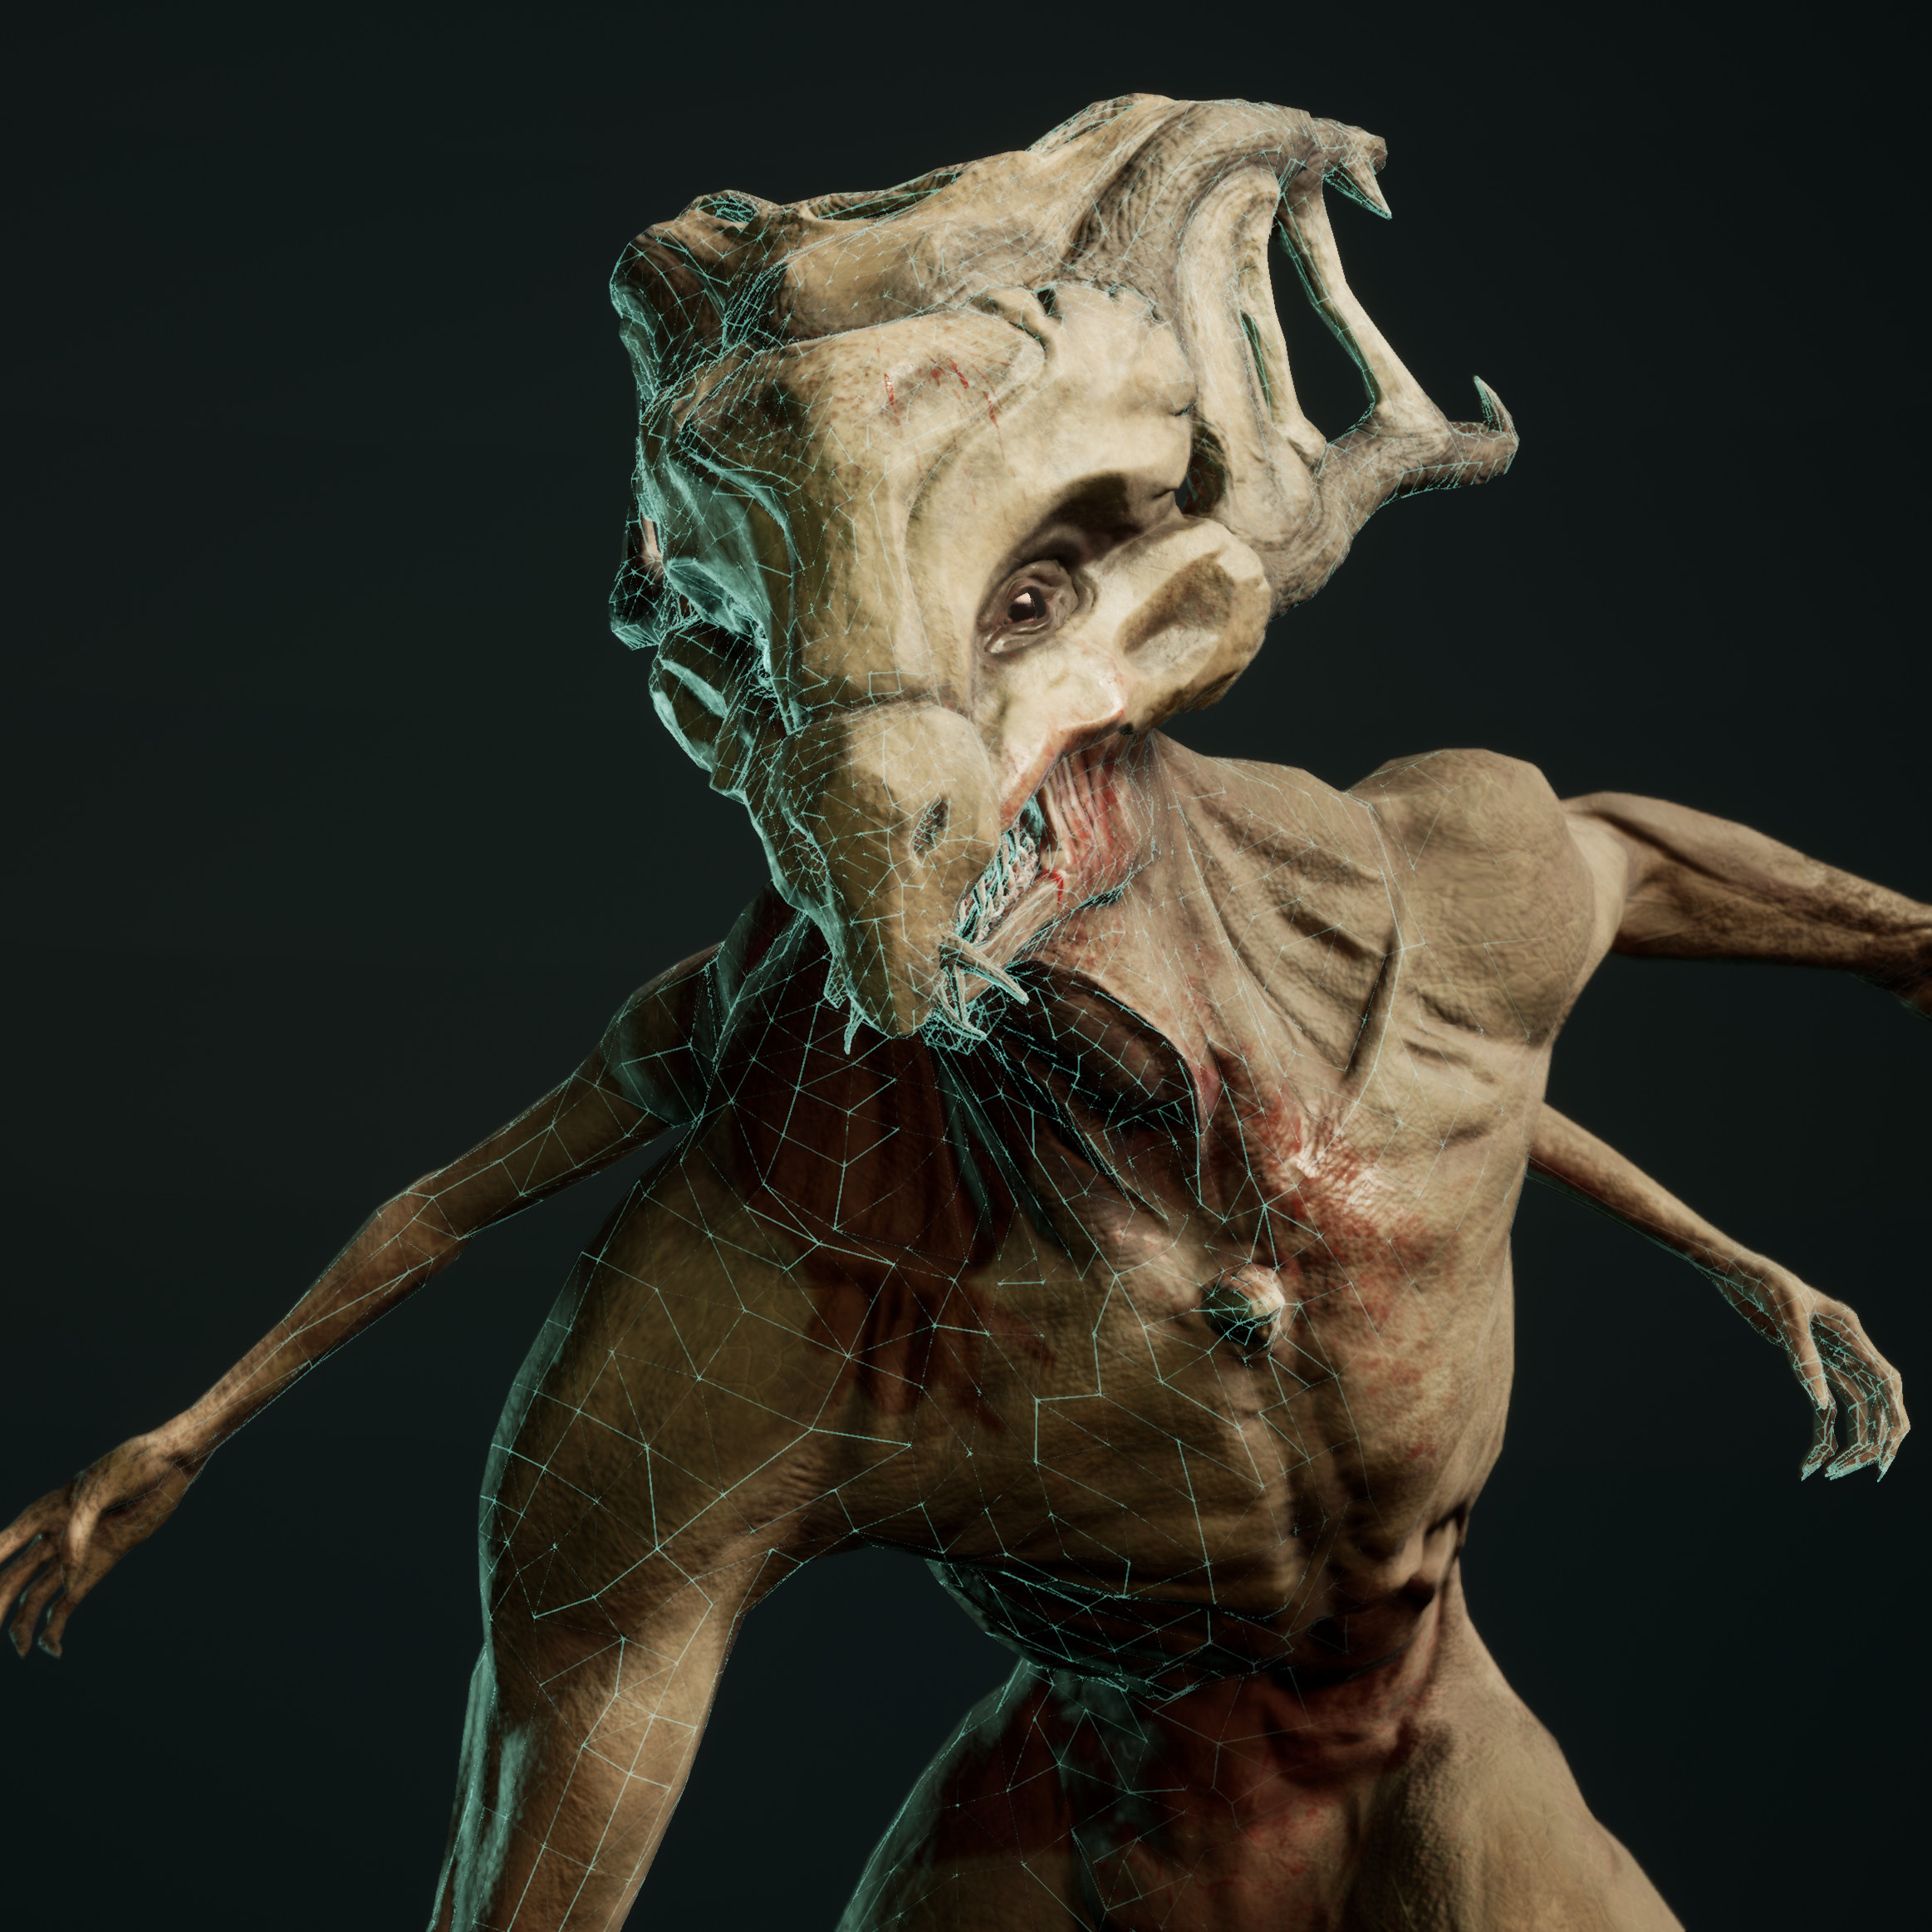 The base model was sculpted using Zbrush, and retopologized using TopoGun.